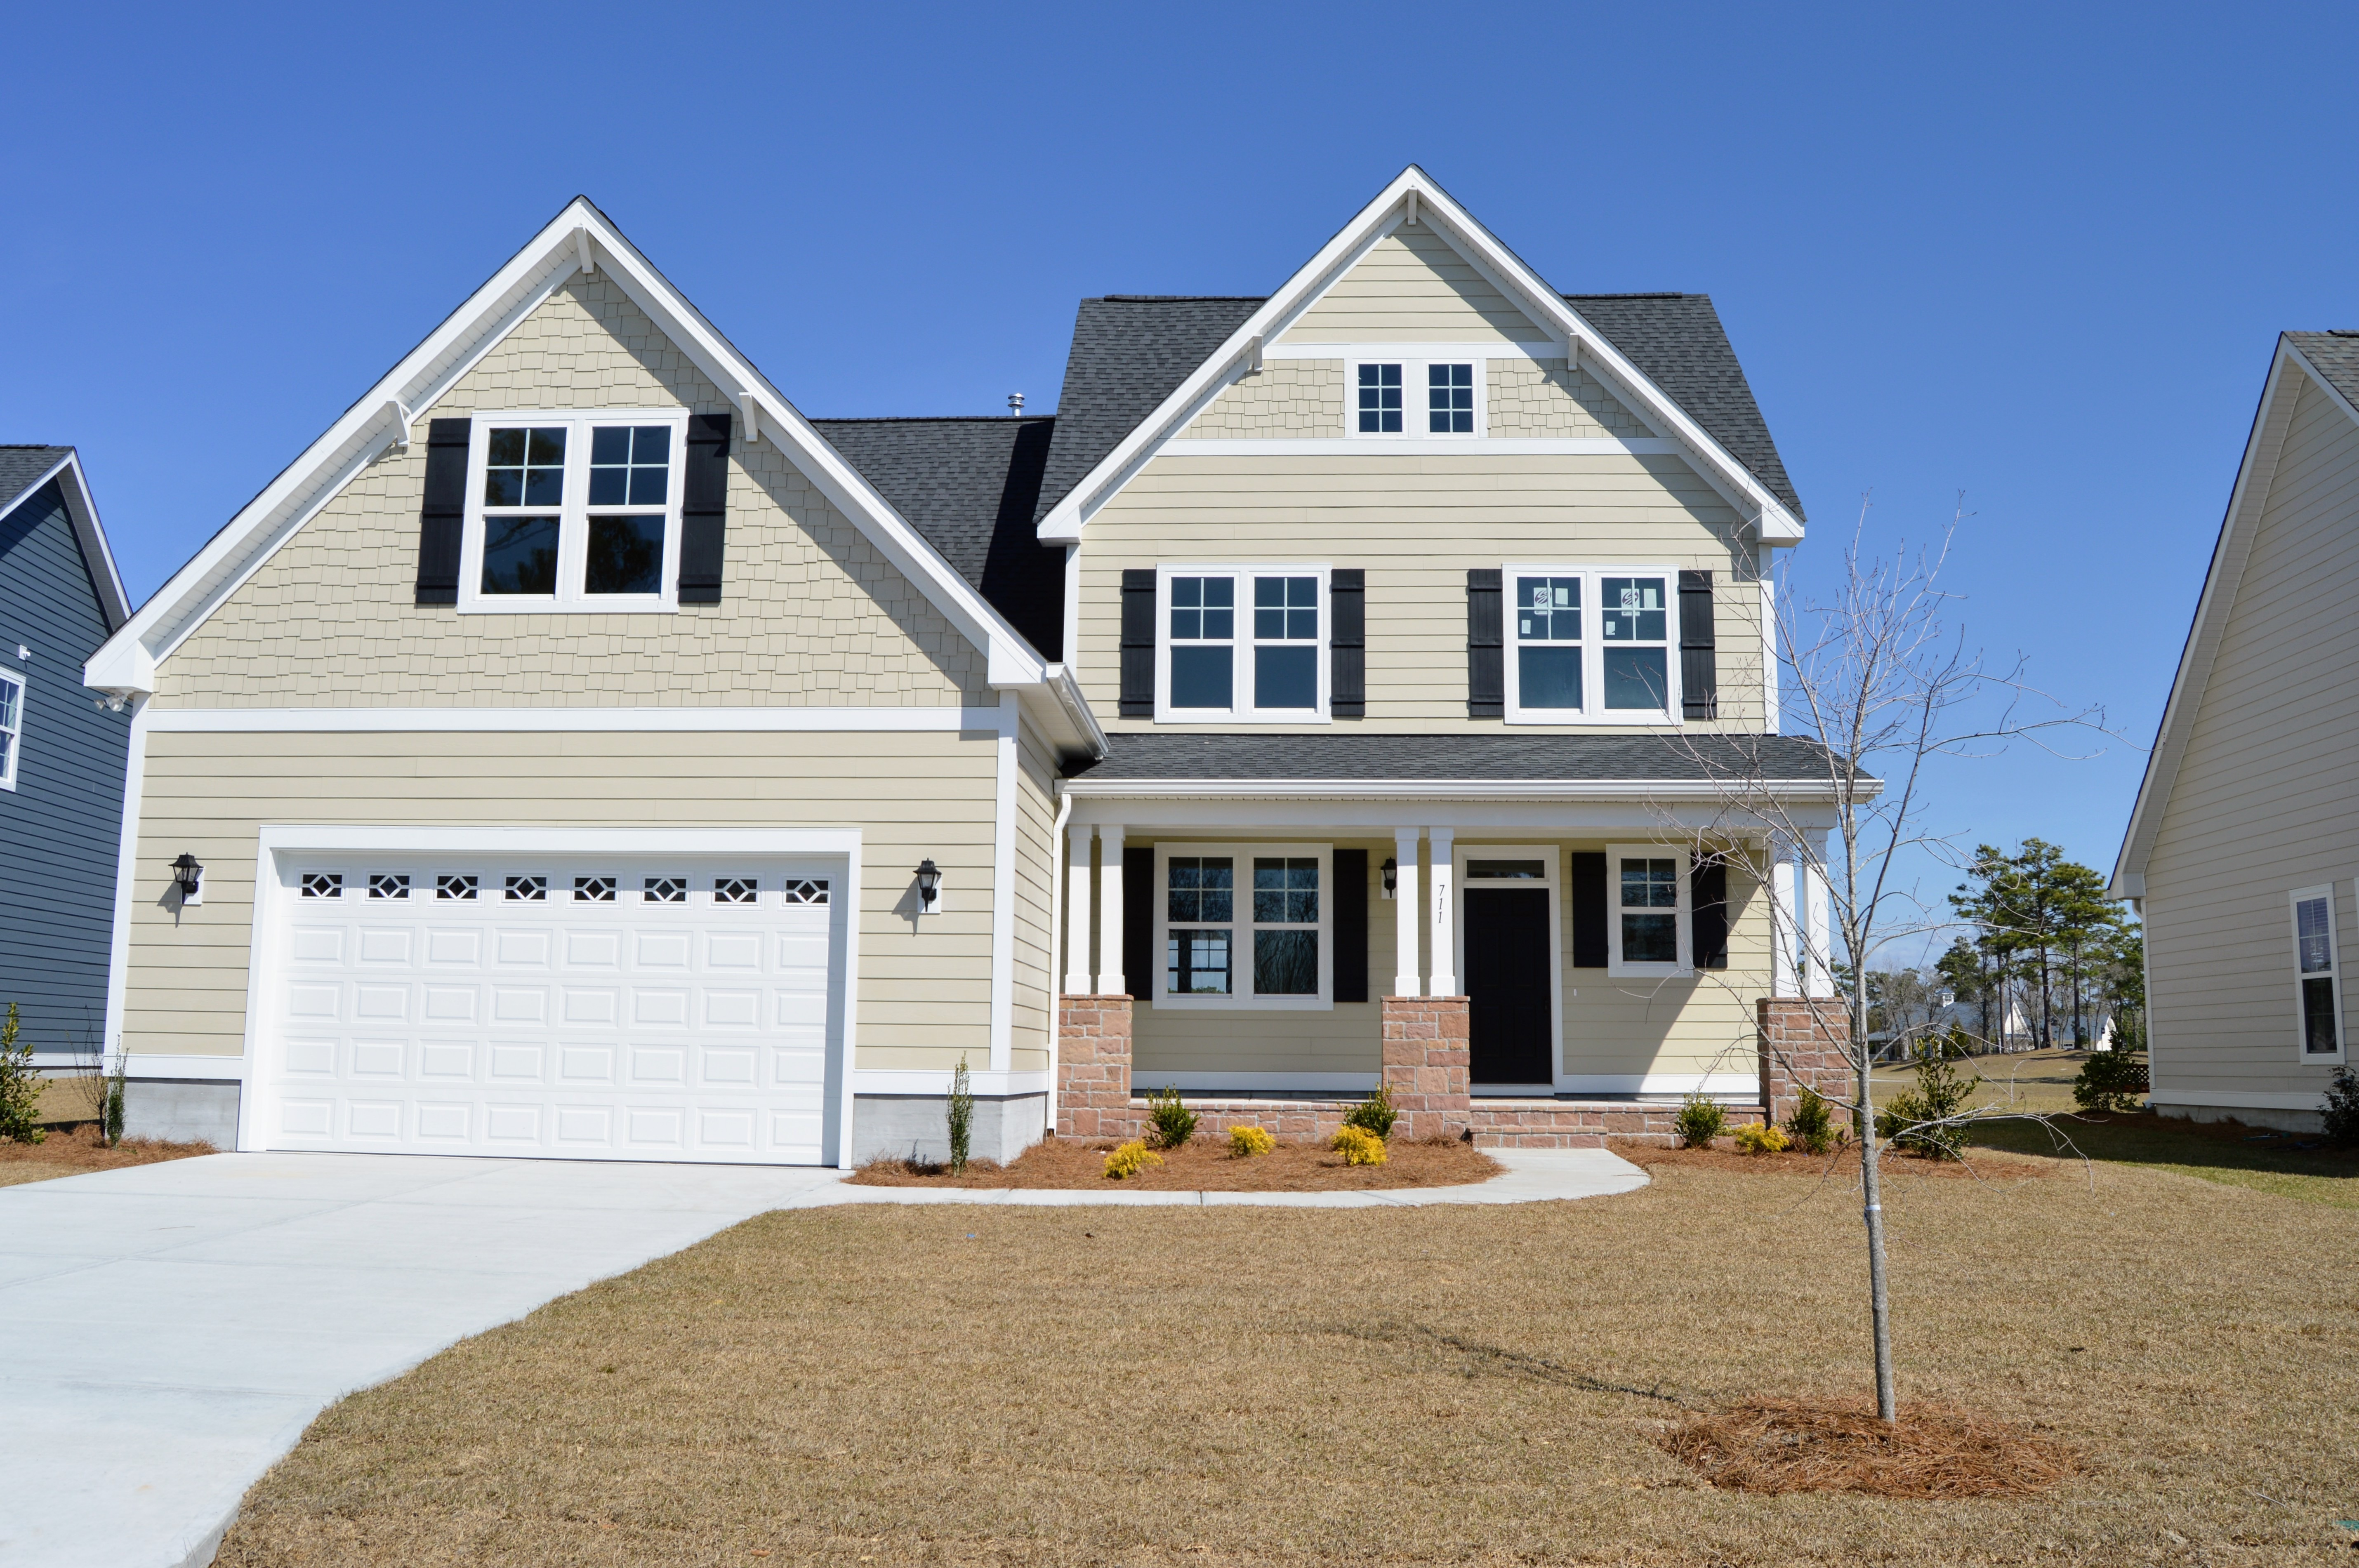 711 lanyard dr bogue watch streamline developers for Home builders in eastern nc